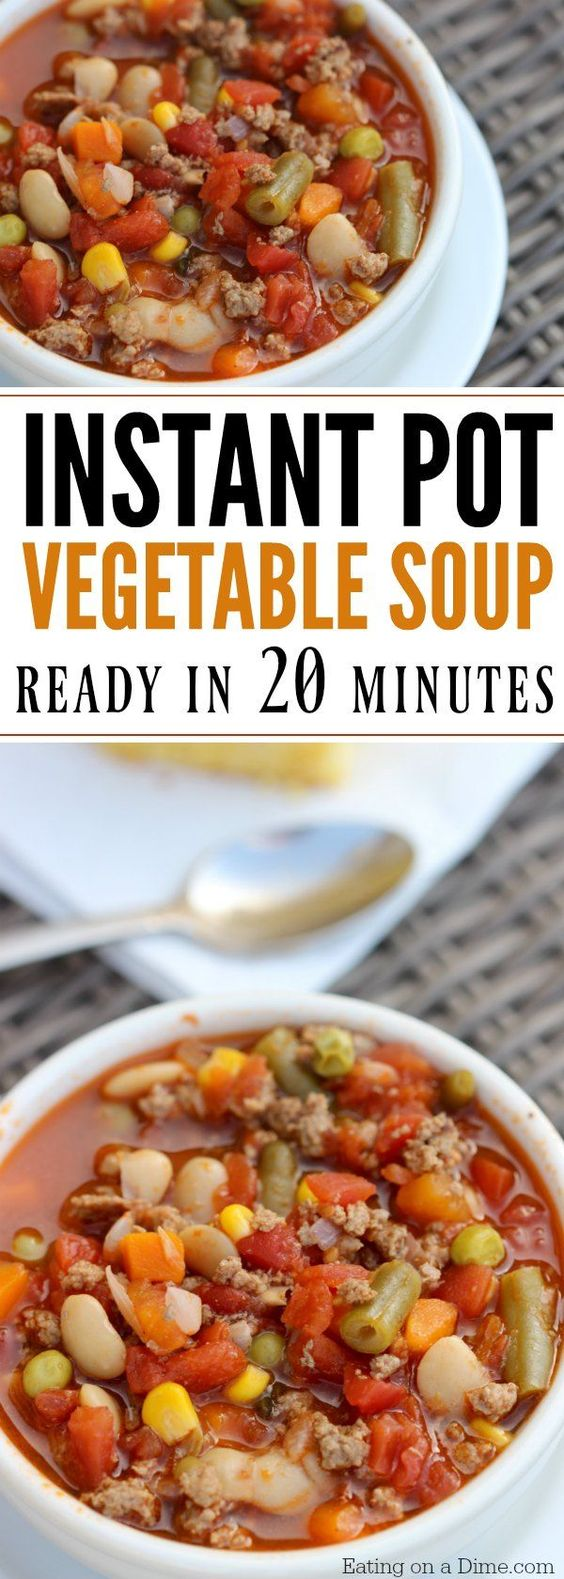 INSTANT POT BEEF VEGETABLE SOUP RECIPE